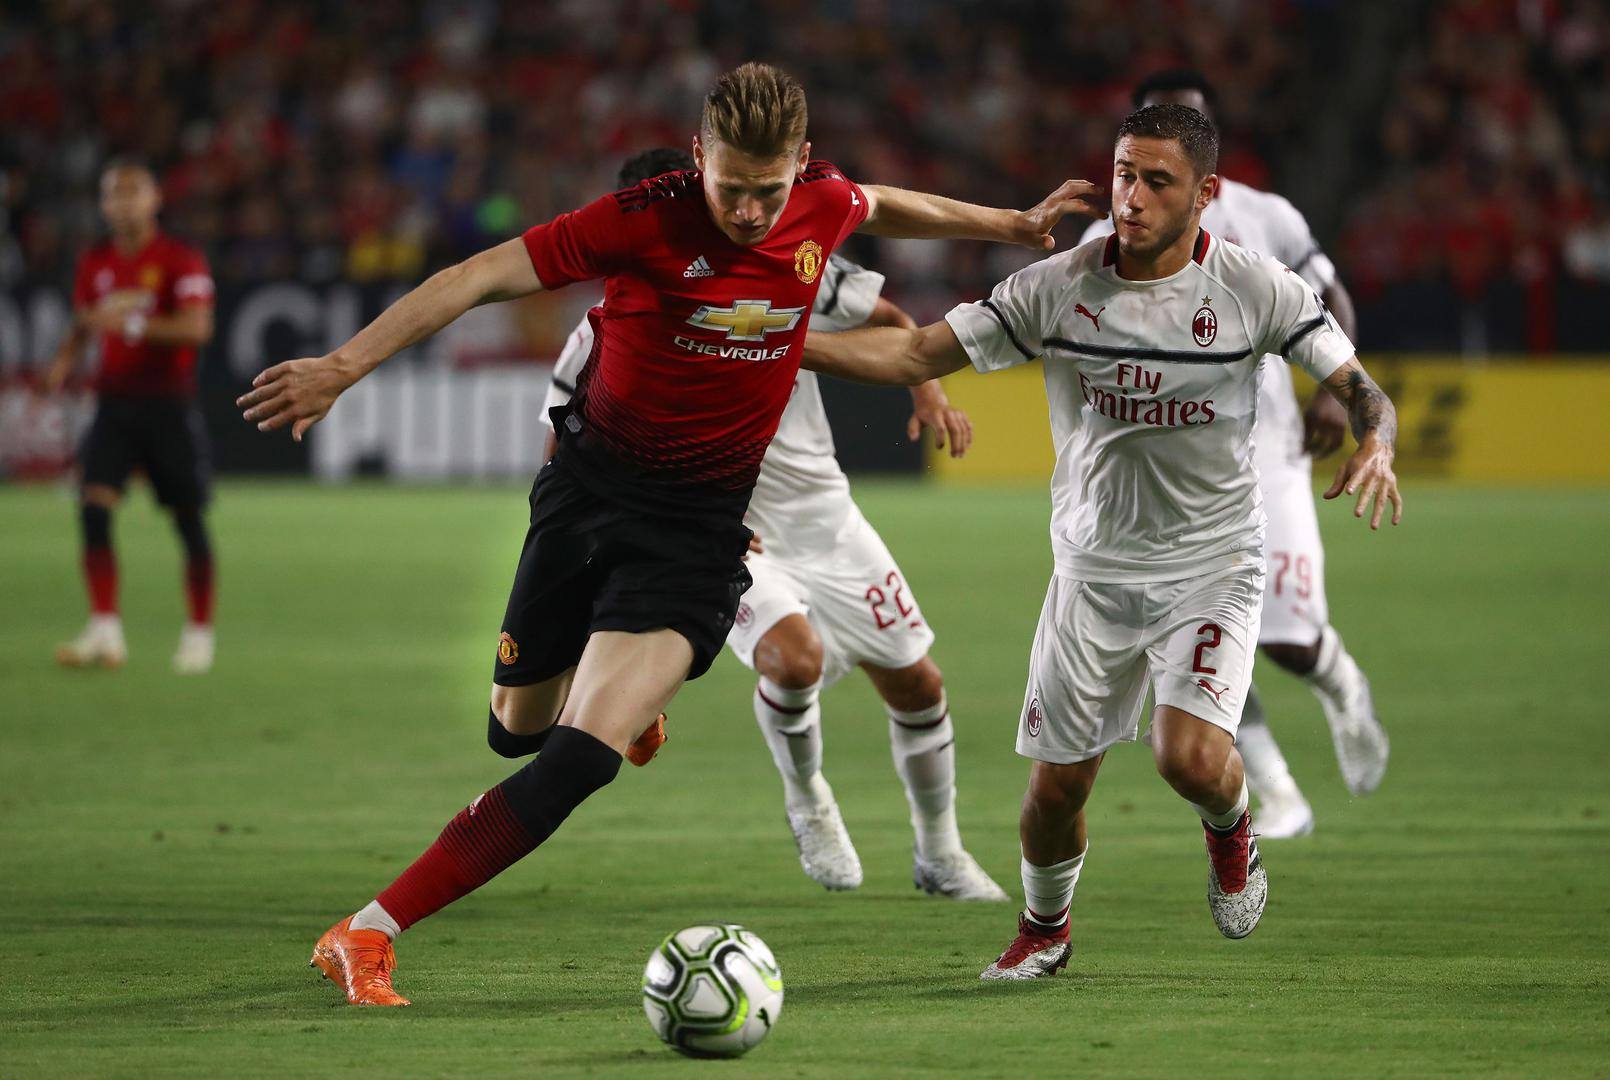 Scott McTominay in action against AC Milan in a pre-season game in 2018.